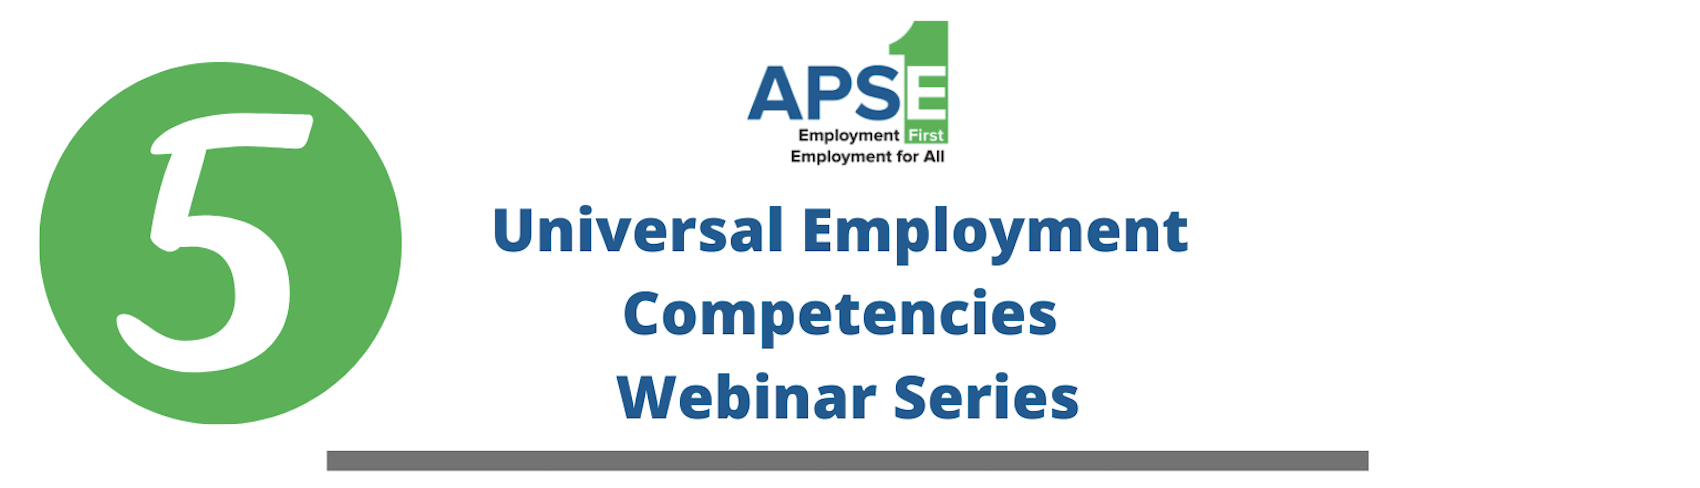 5 Universal Employment Competencies Webinar Series.